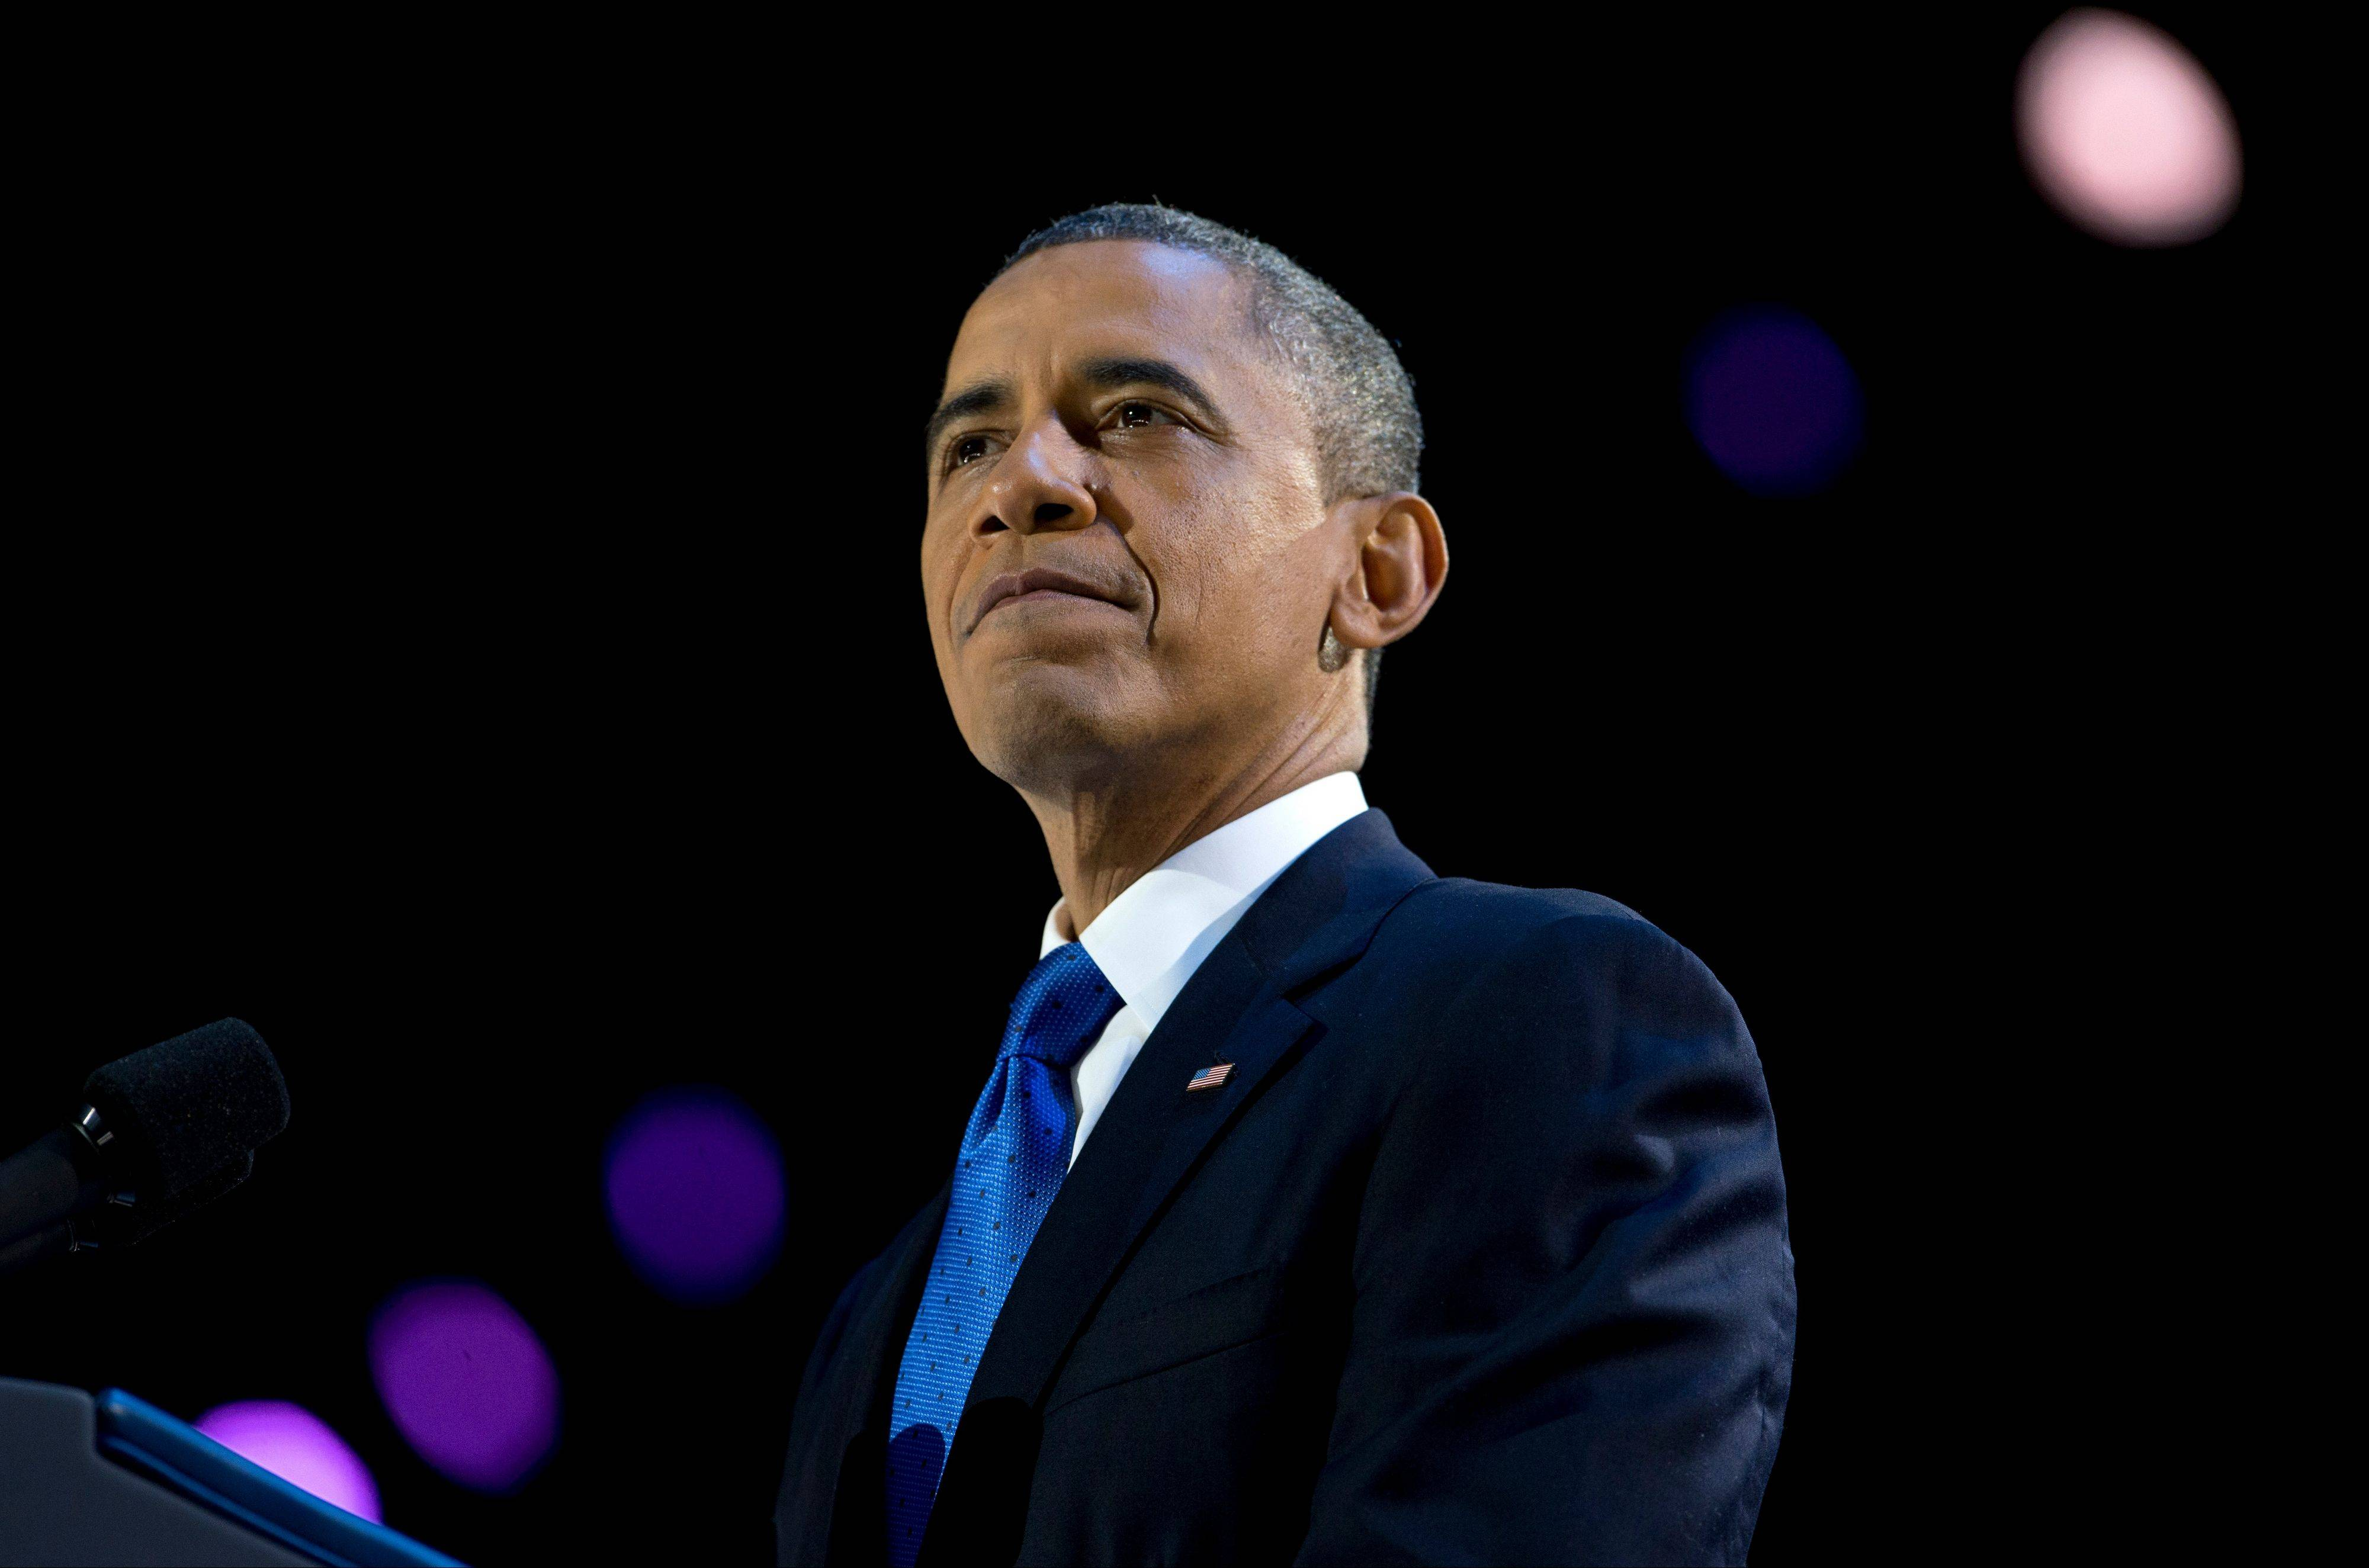 Now that the election is over, President Barack Obama will revamp his administration for a second term, including changes to his Cabinet.